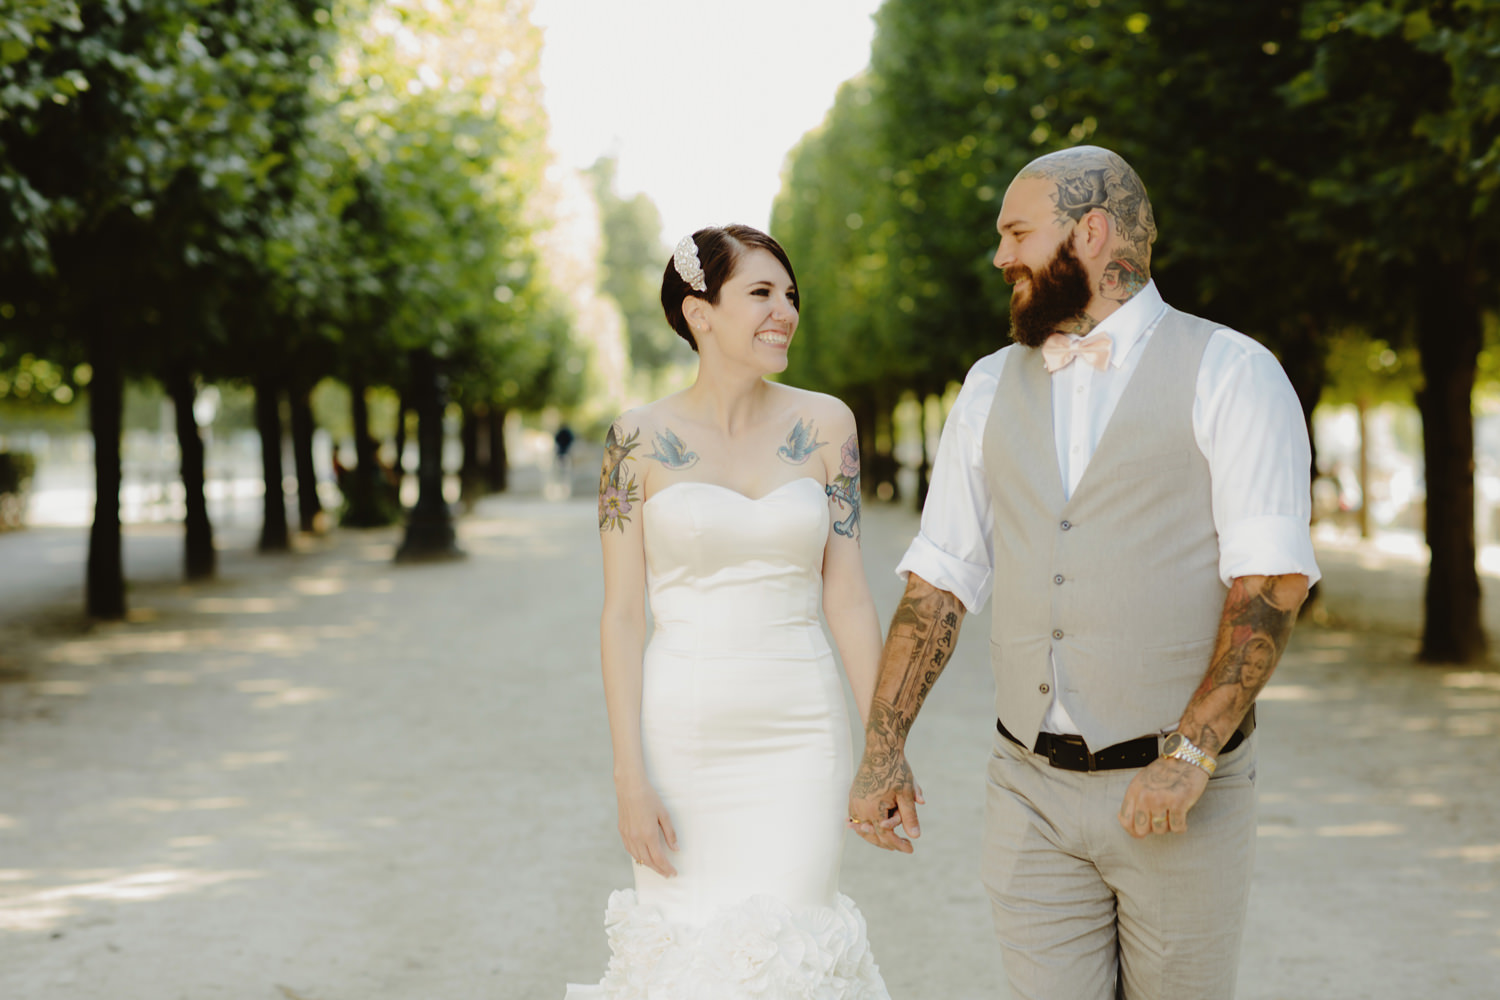 sammblake-paris-frace-wedding-elopement-031